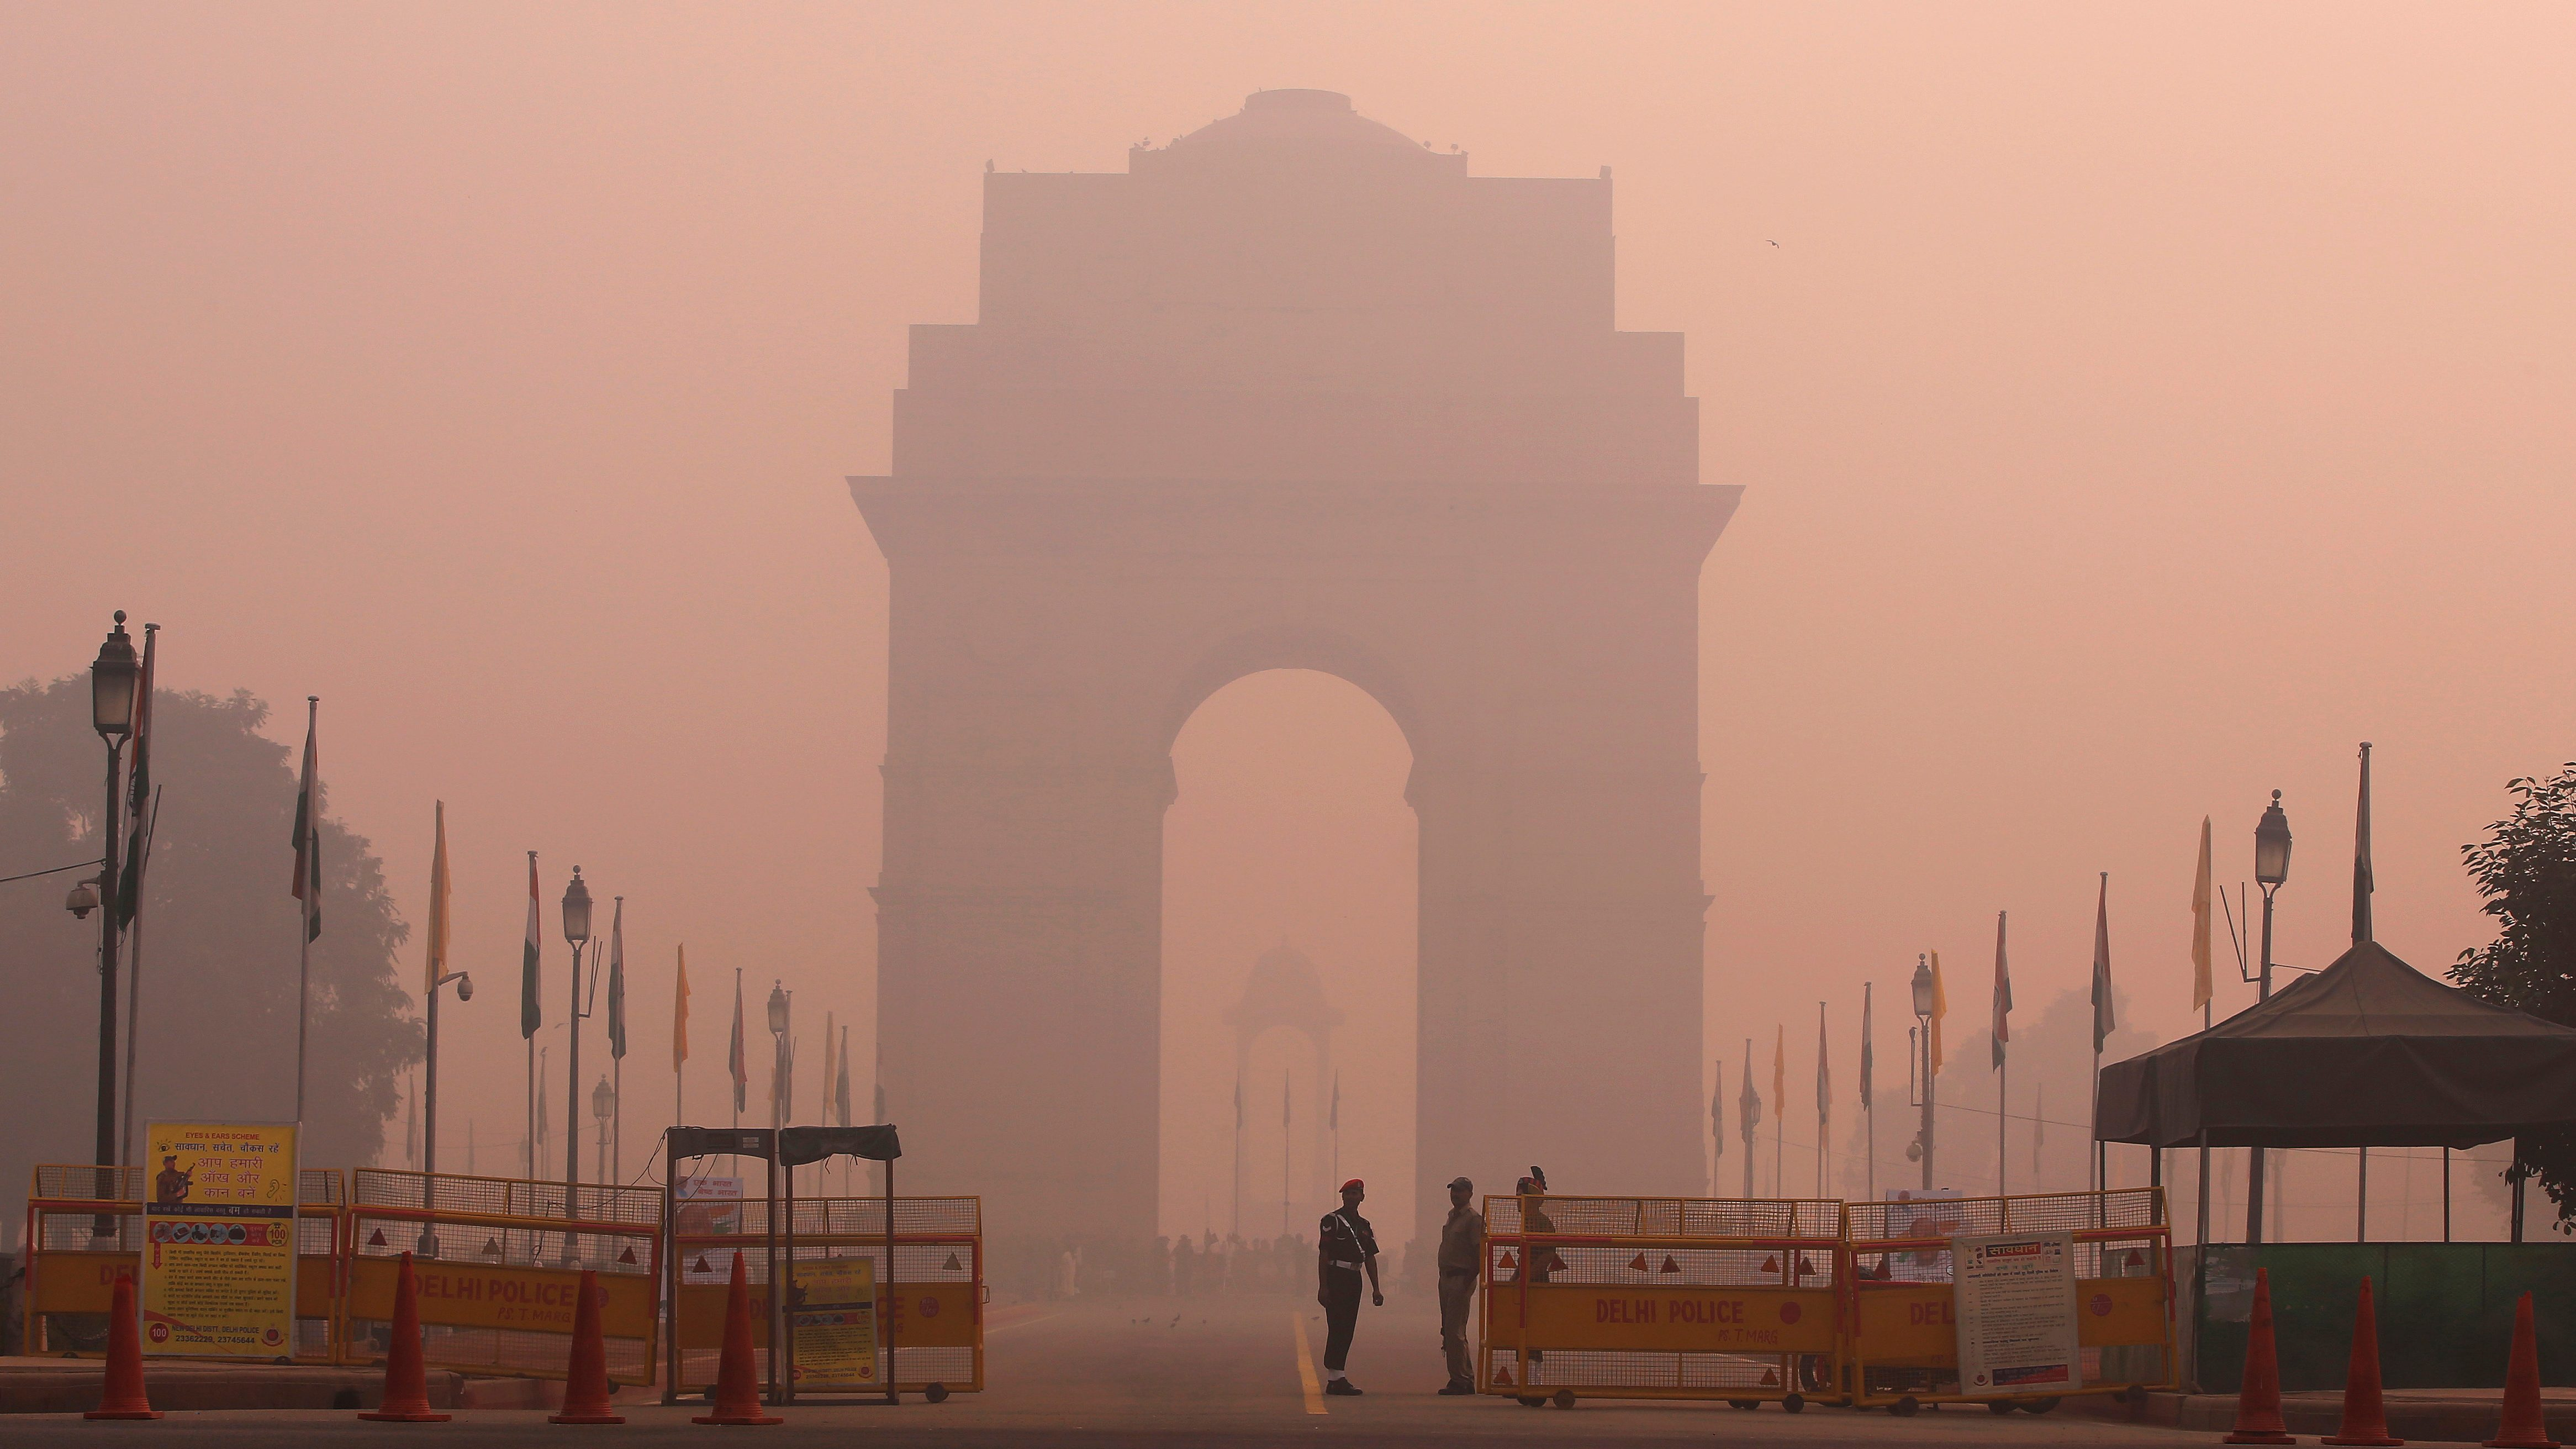 Security personnel stand guard in front of the India Gate amidst the heavy smog in New Delhi, India, October 31, 2016.